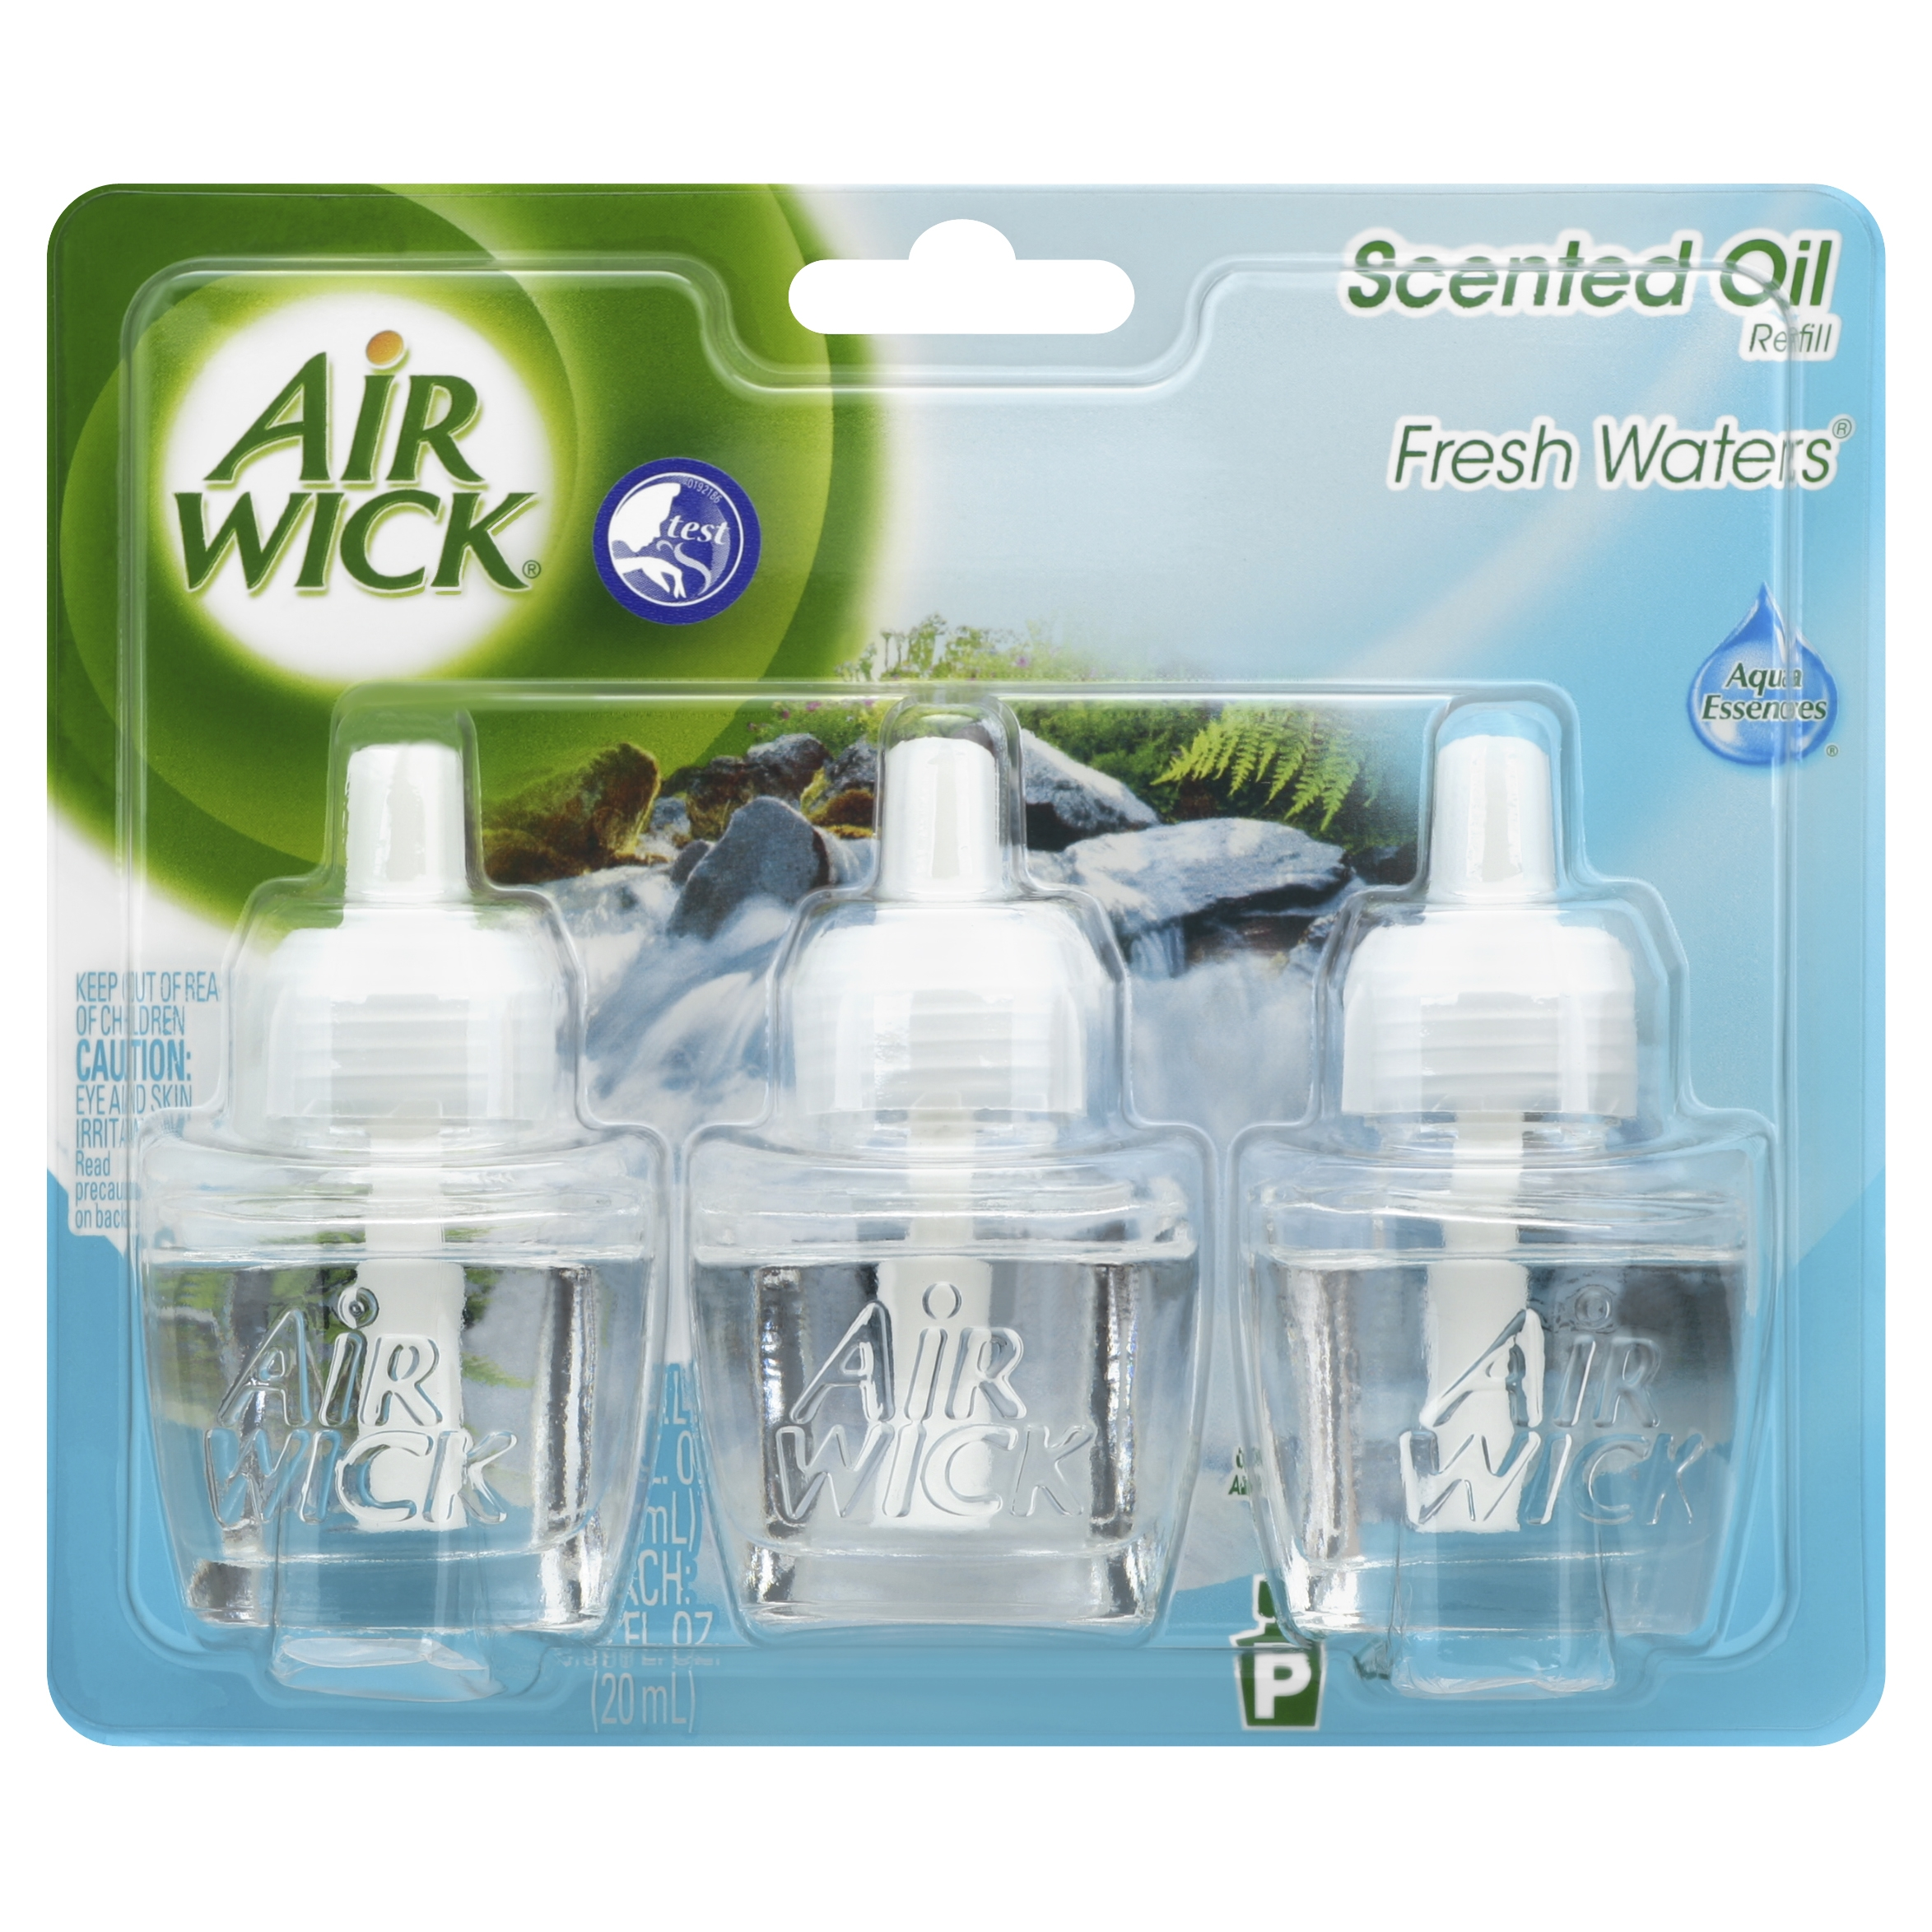 Air Wick Scented Oil Air Freshener, Fresh Waters Scent, Triple Refills, 0.67 Ounce